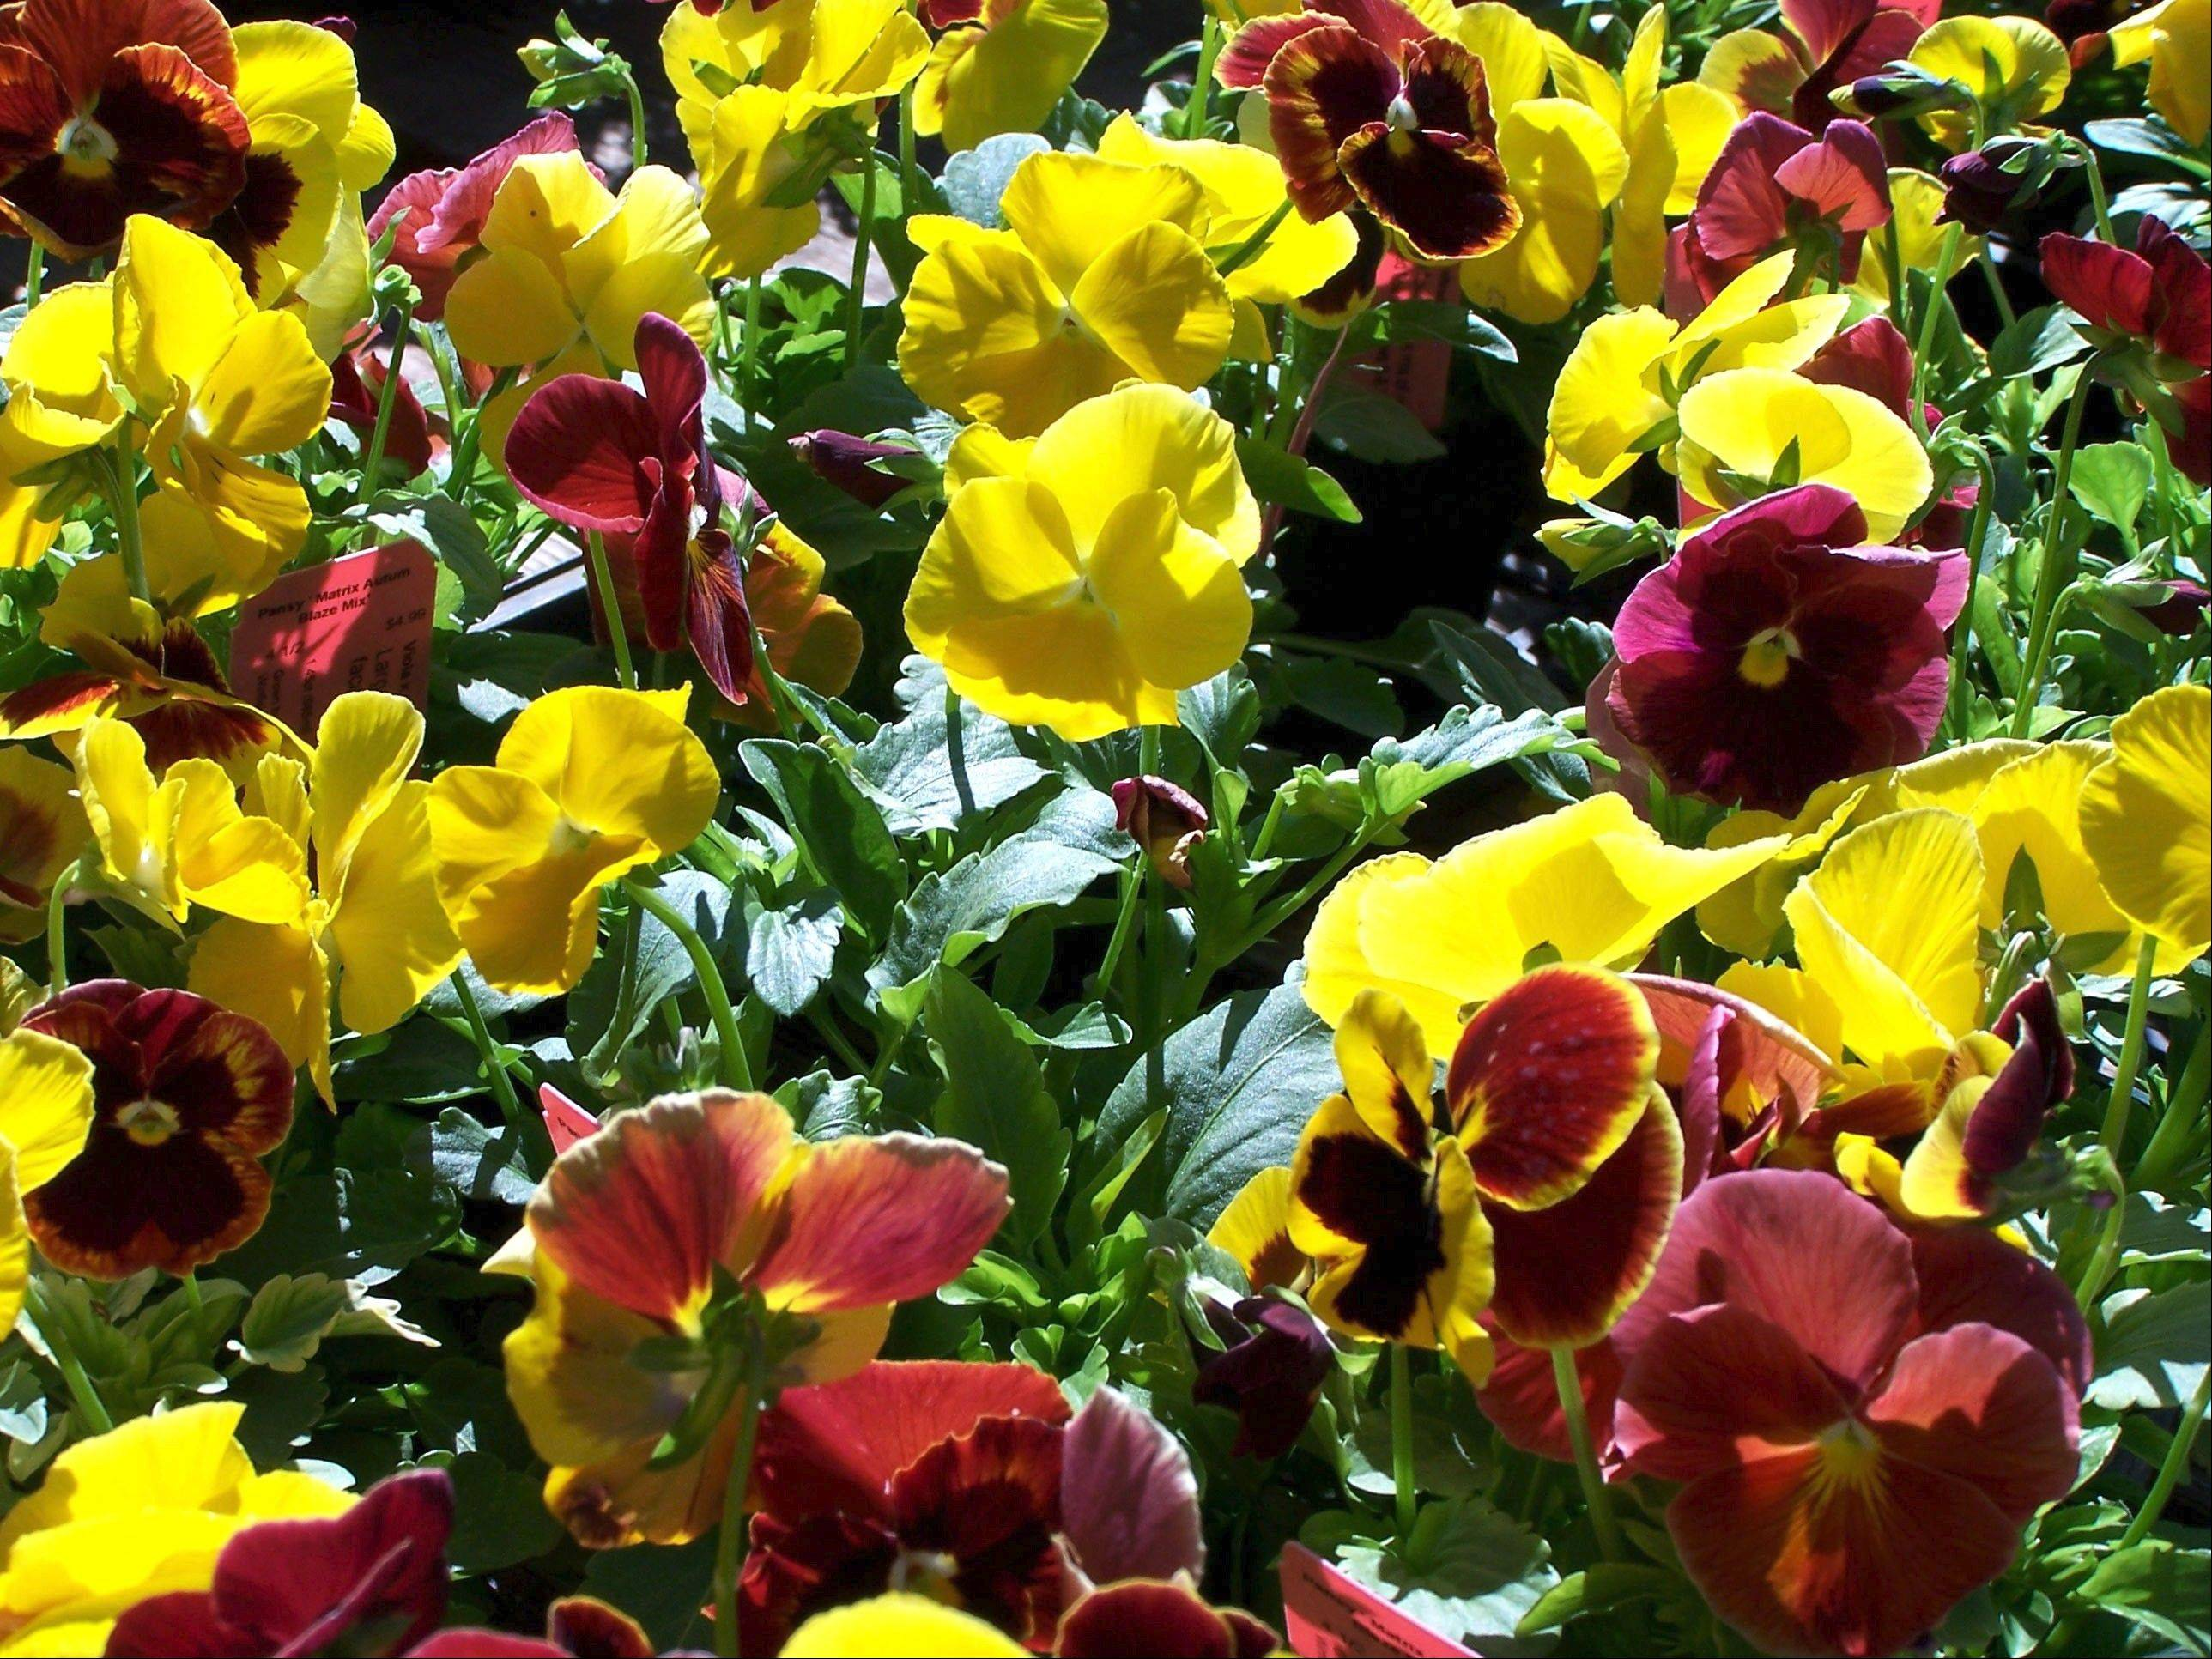 Pansies are available in autumnal shades.